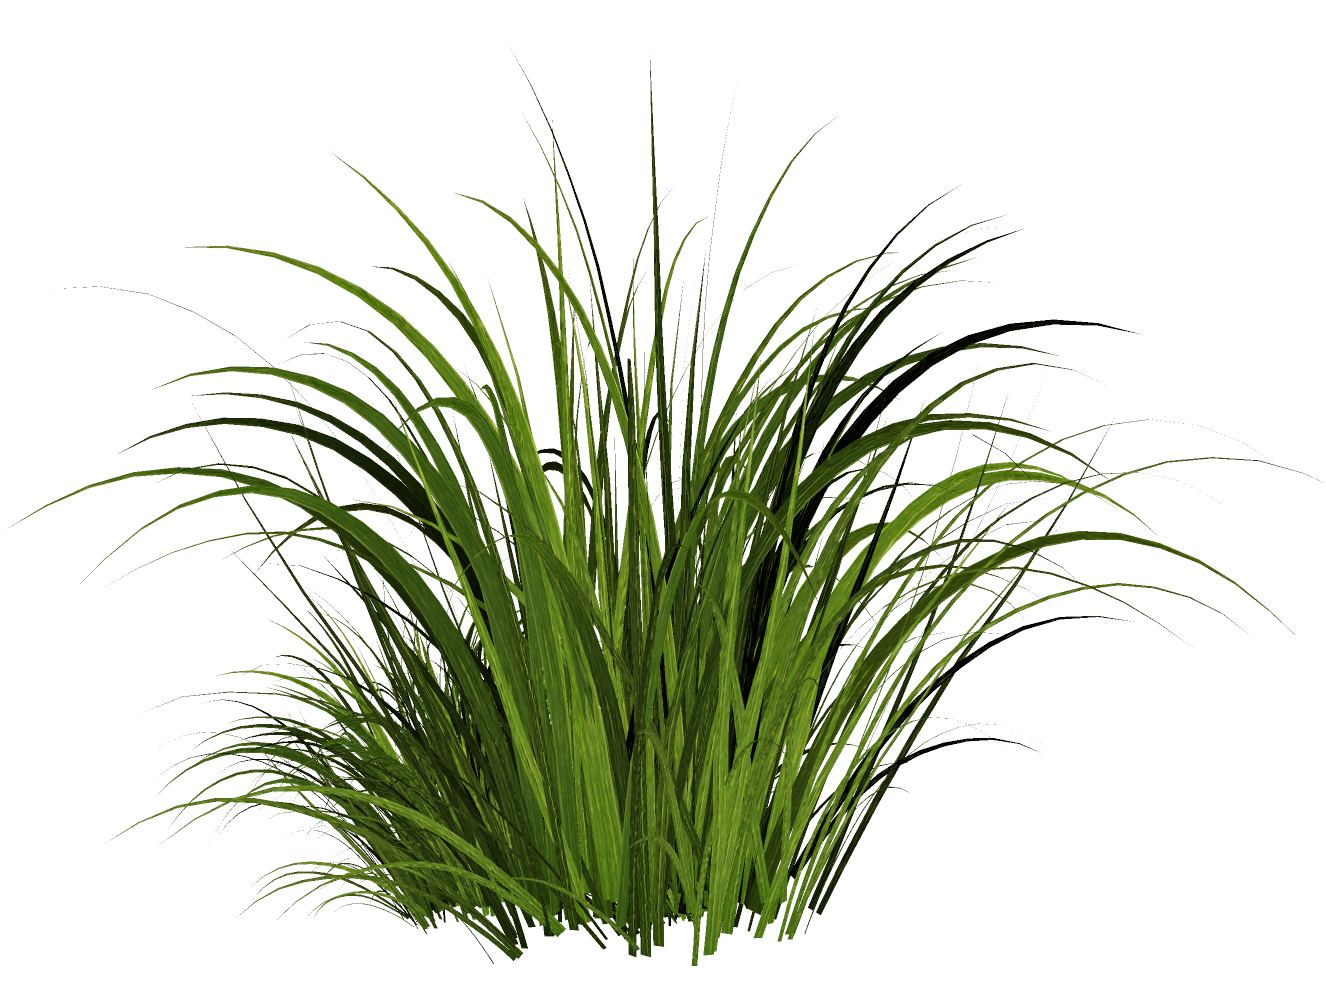 Grass texture png. Solved the material is